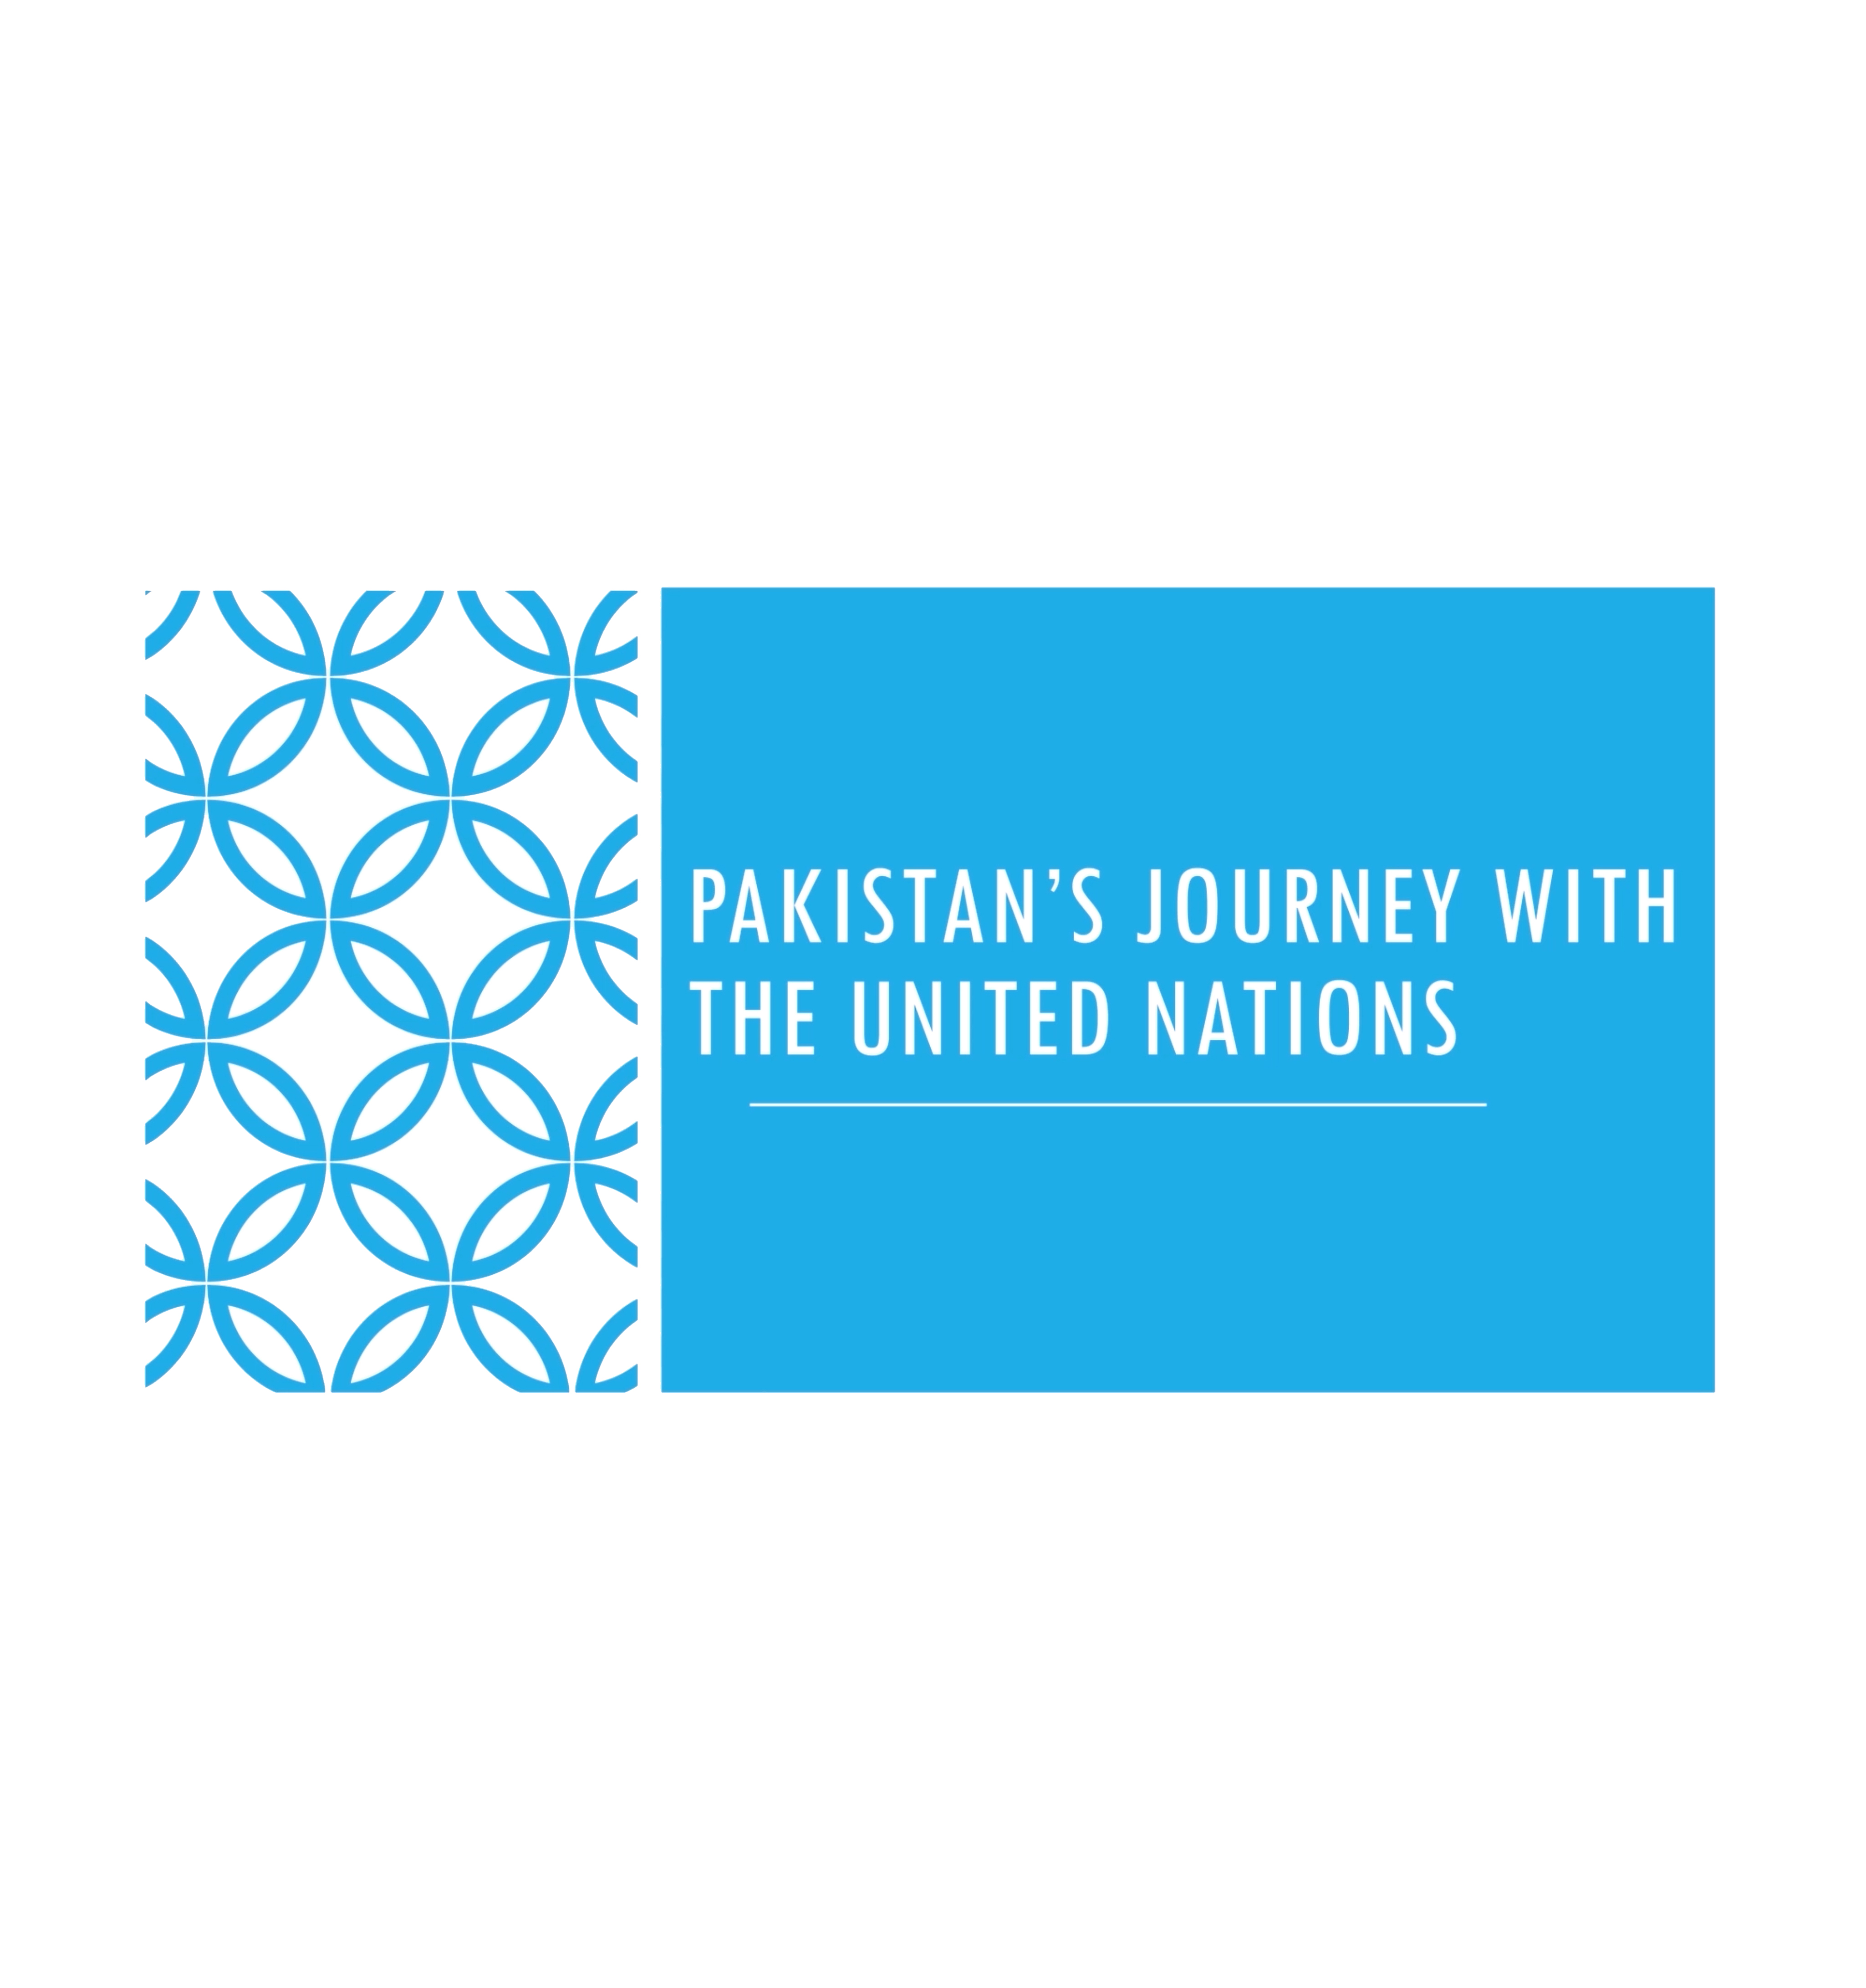 Photo Exhibition: Celebrating 75 years of the United Nations 